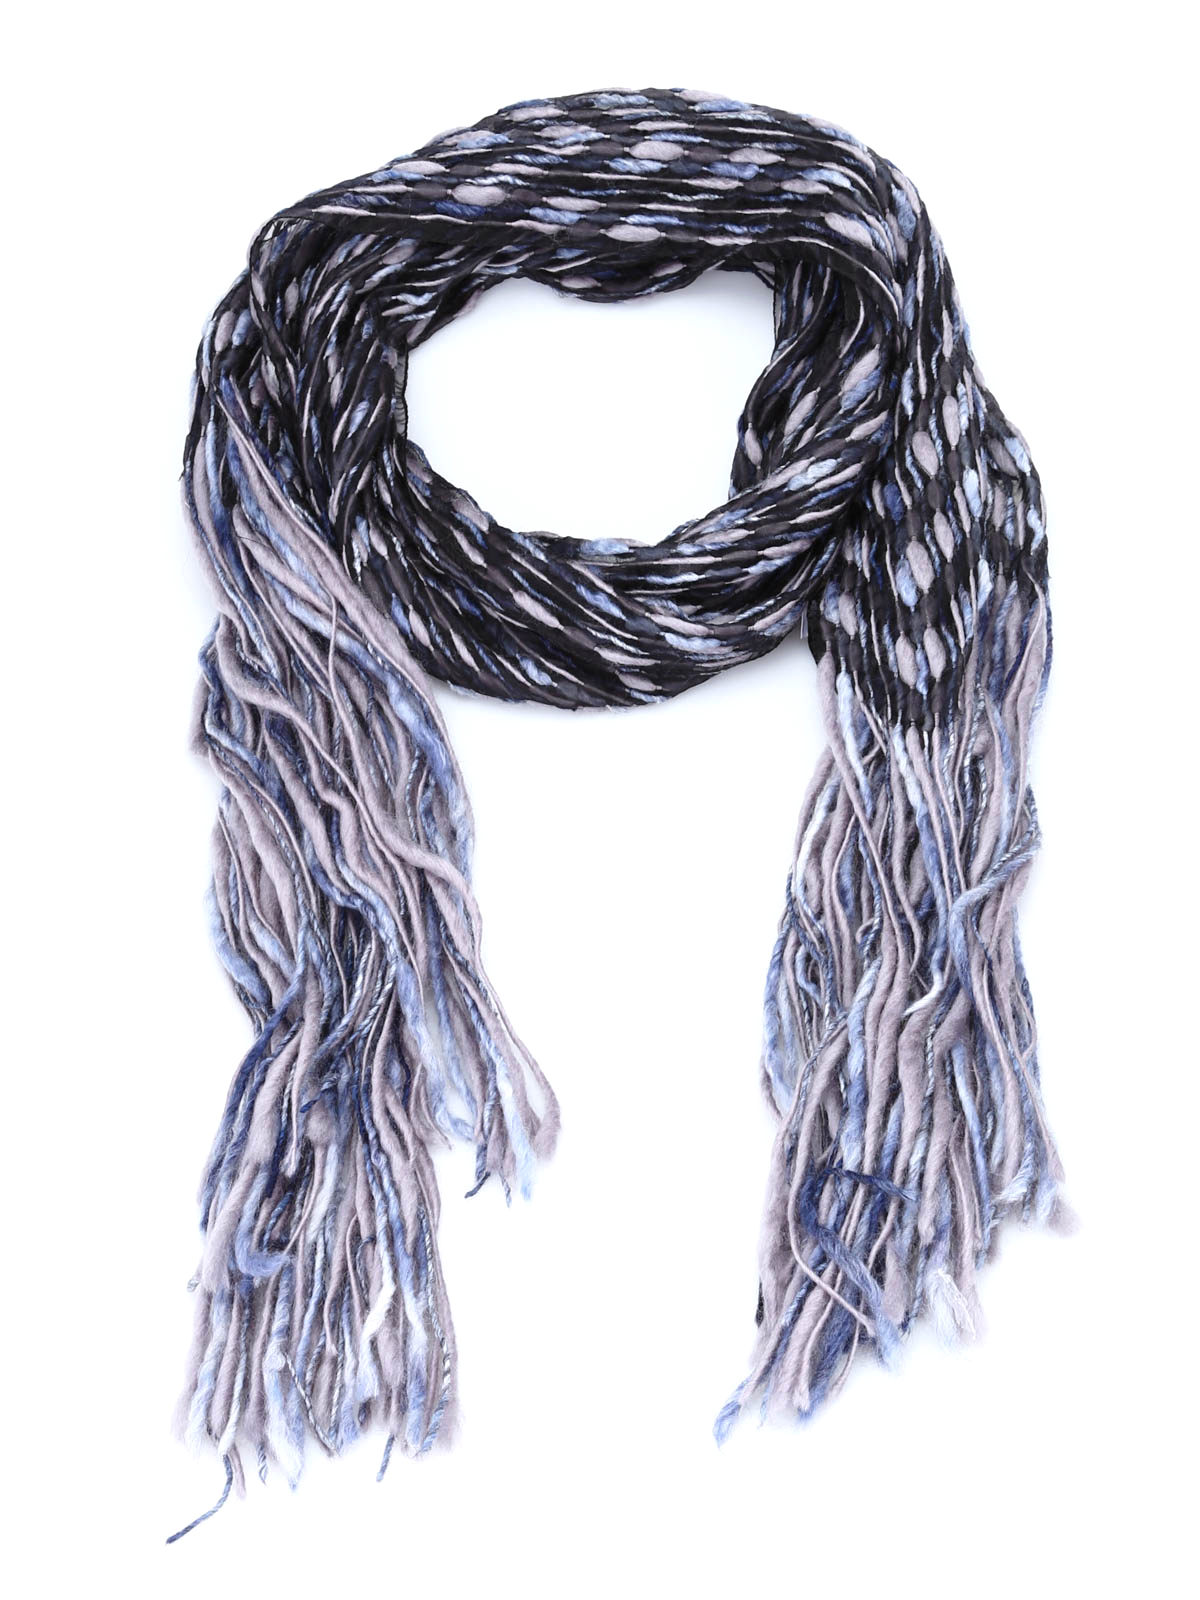 8273e2c02 Armani Collezioni - Wool scarf on a sheer texture - scarves - 695018 ...